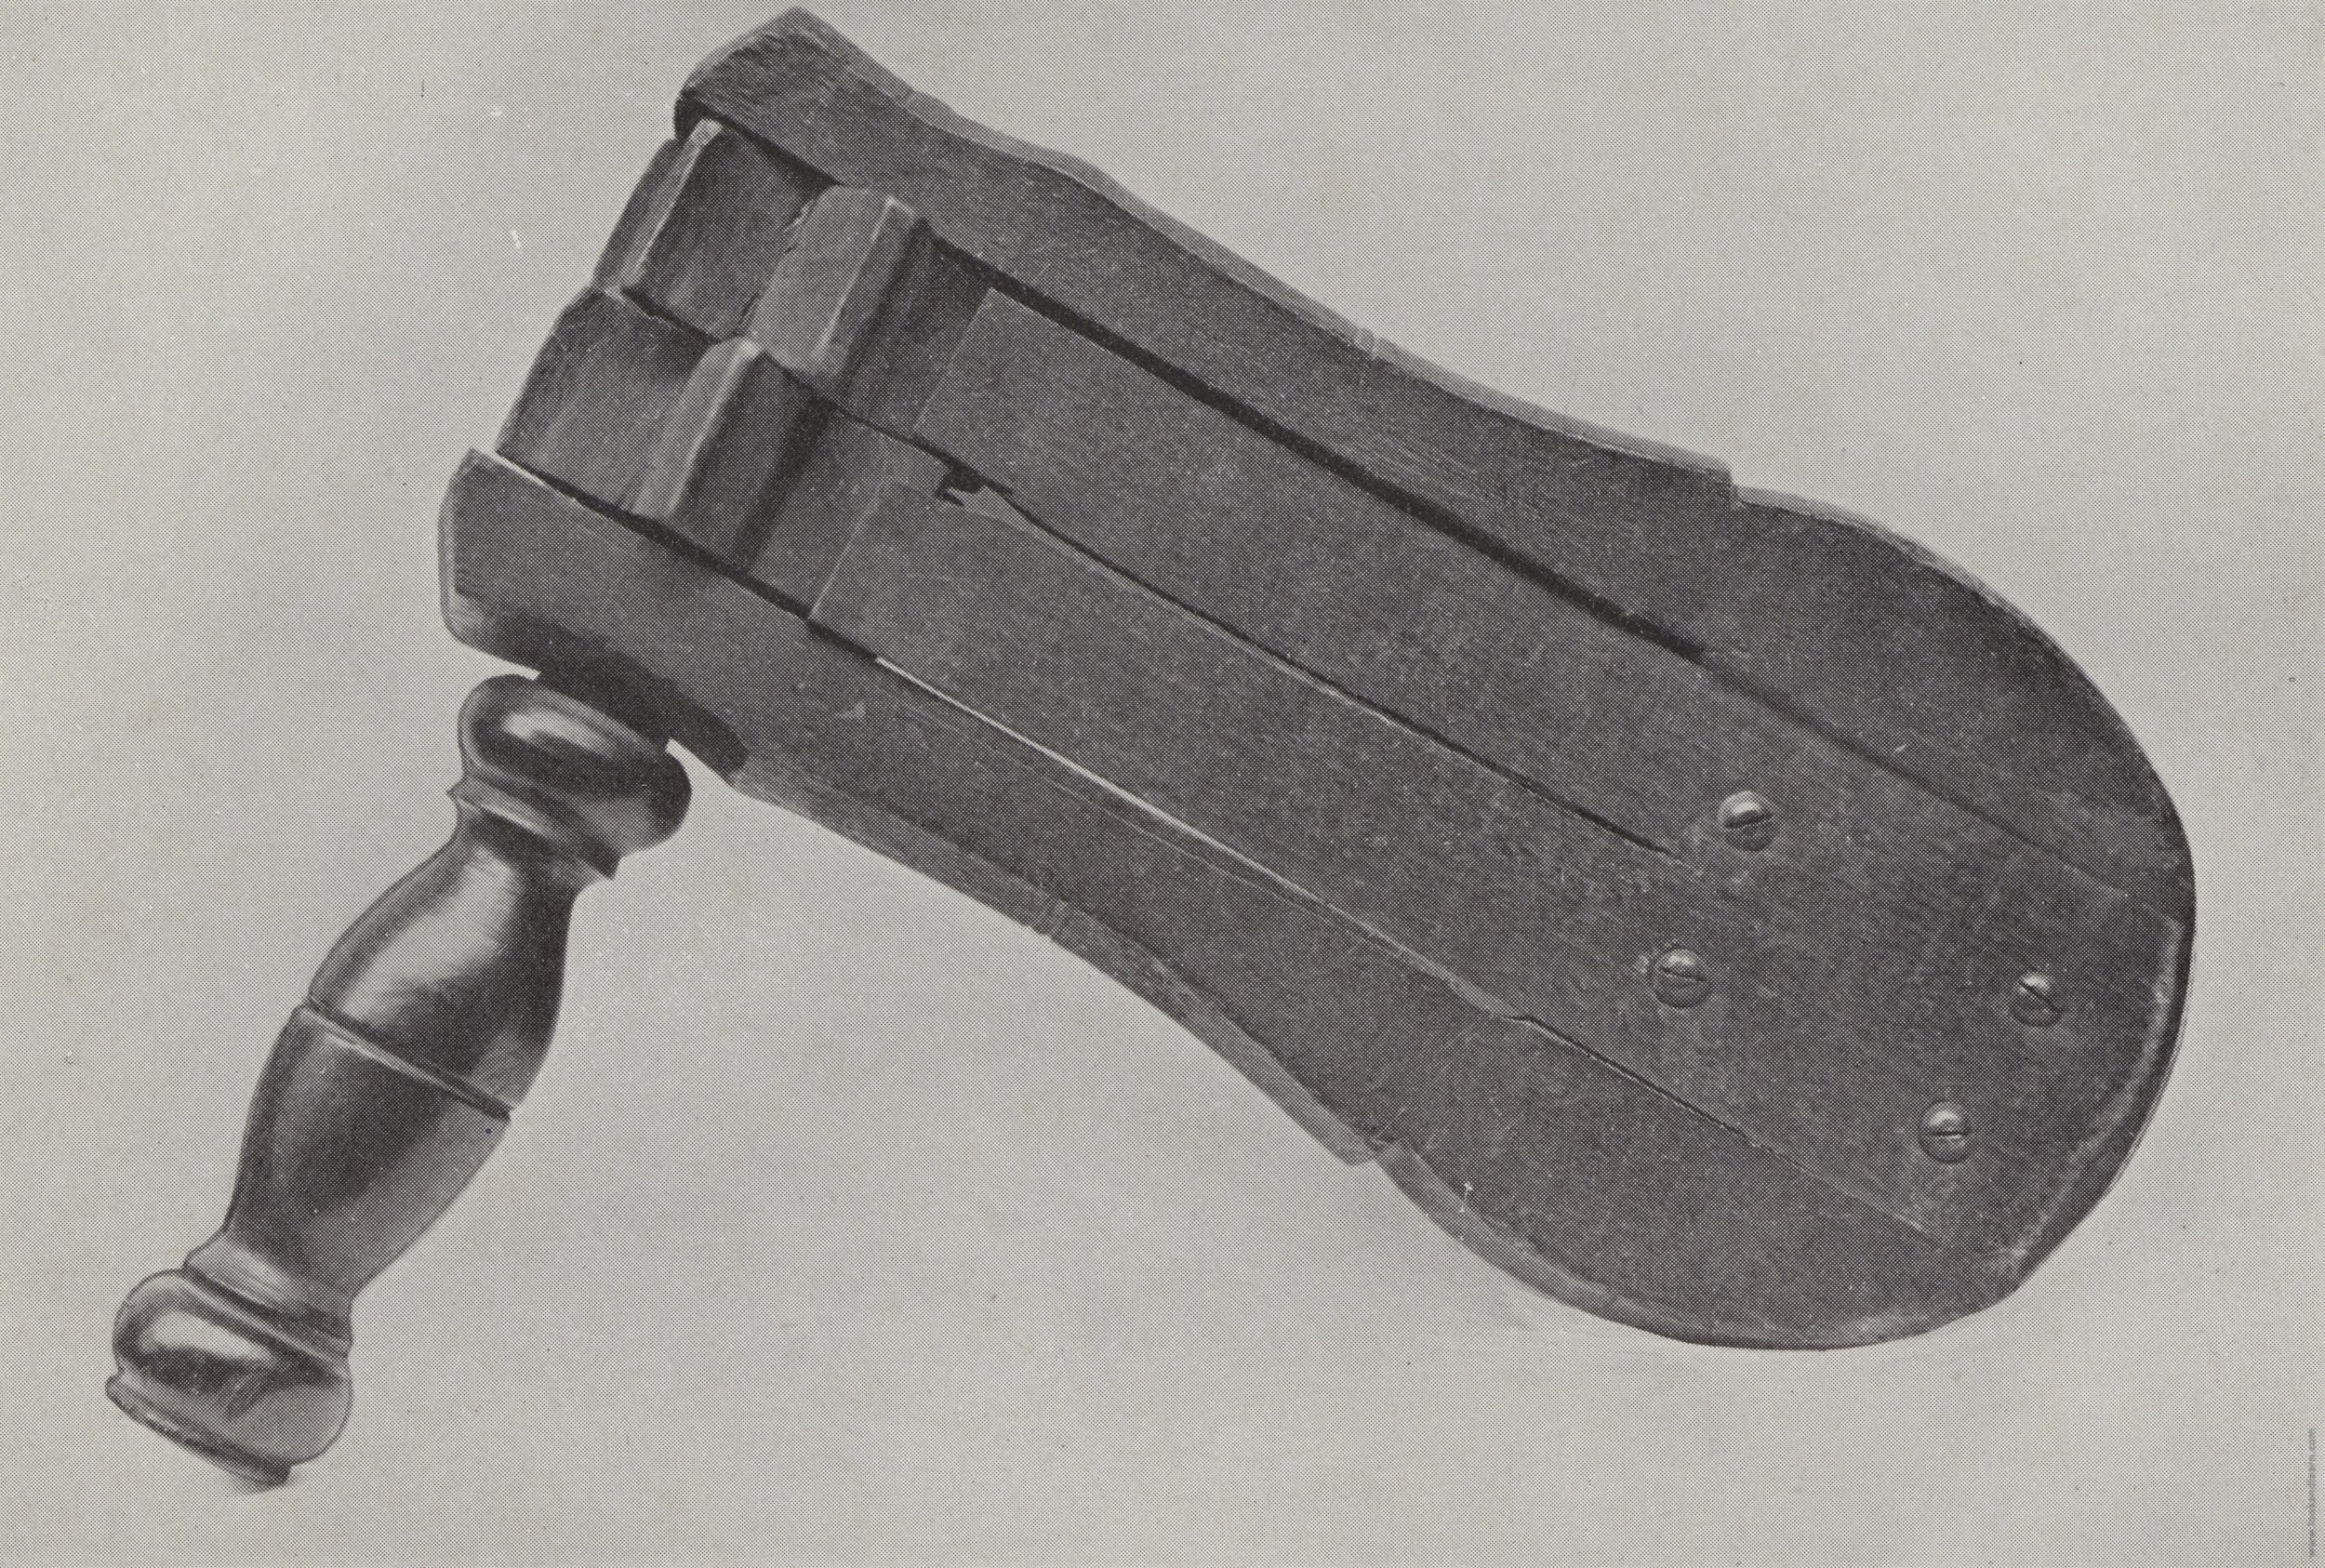 The old Police Rattle, used by the Watchmen. Illustrated for  The Police Encyclopaedia  by Hargrave L. Adam (Blackfriars Publishing, c 1912)